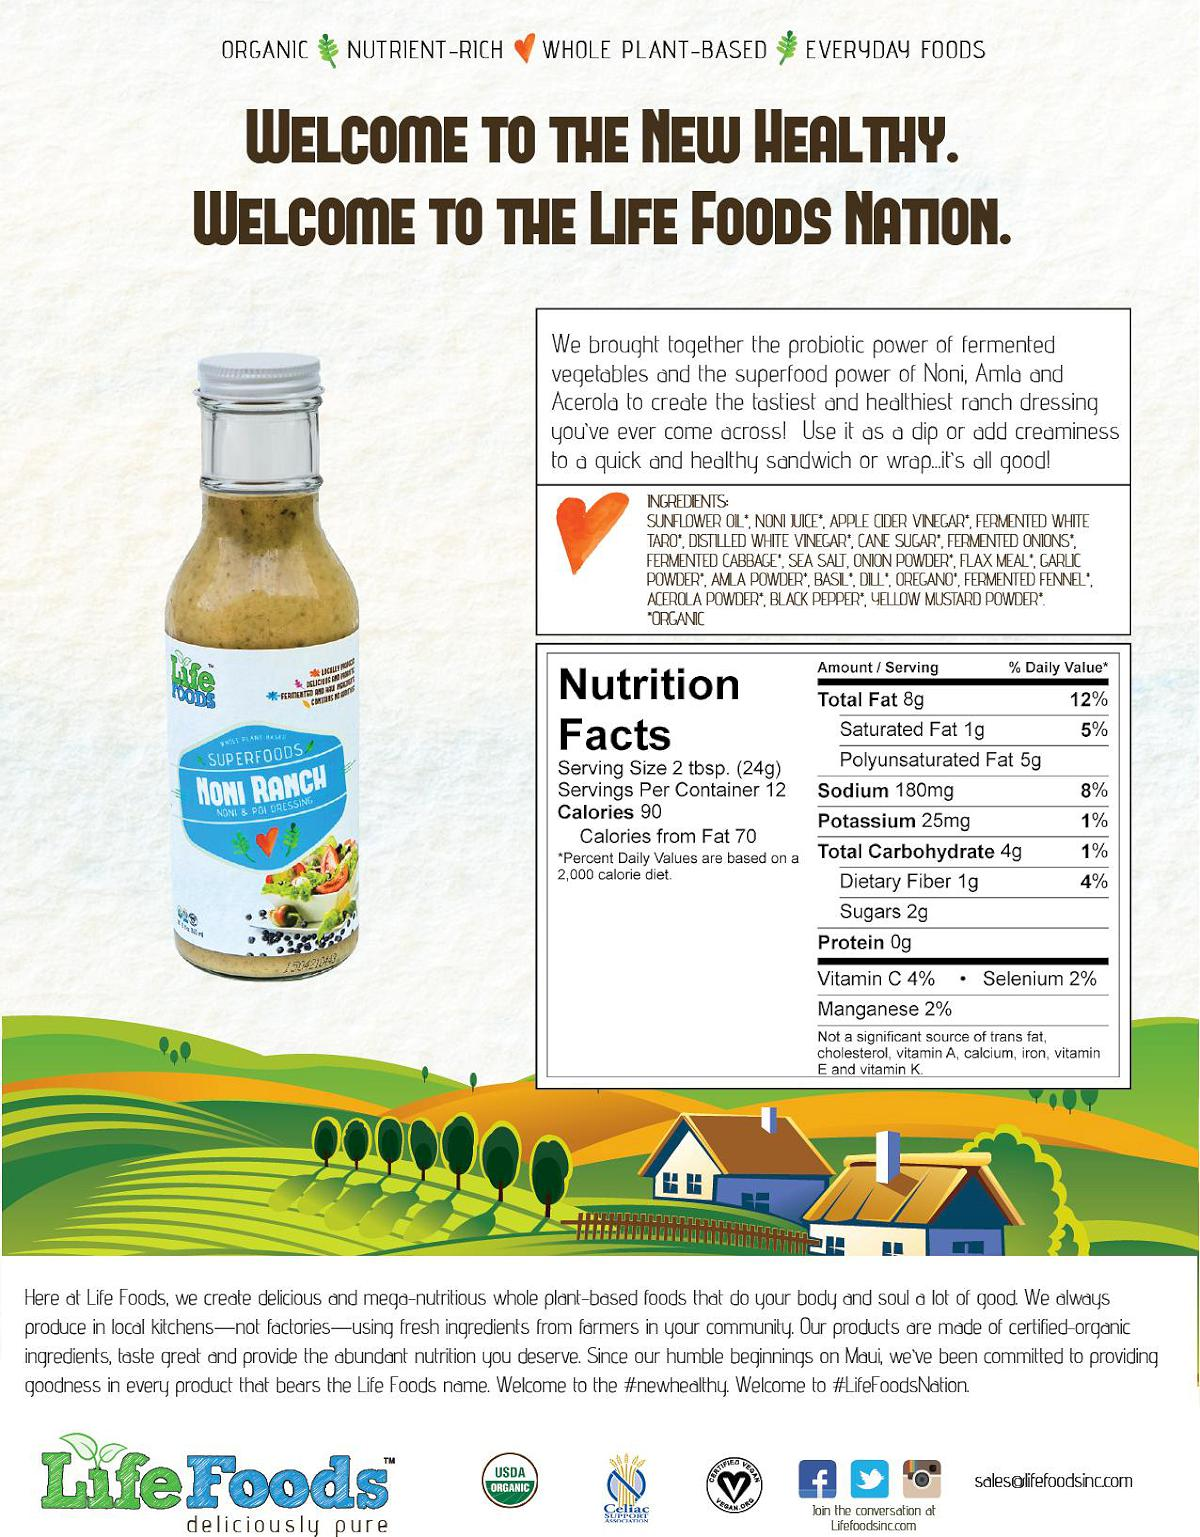 lifefoods-sell-sheet-noni-ranch